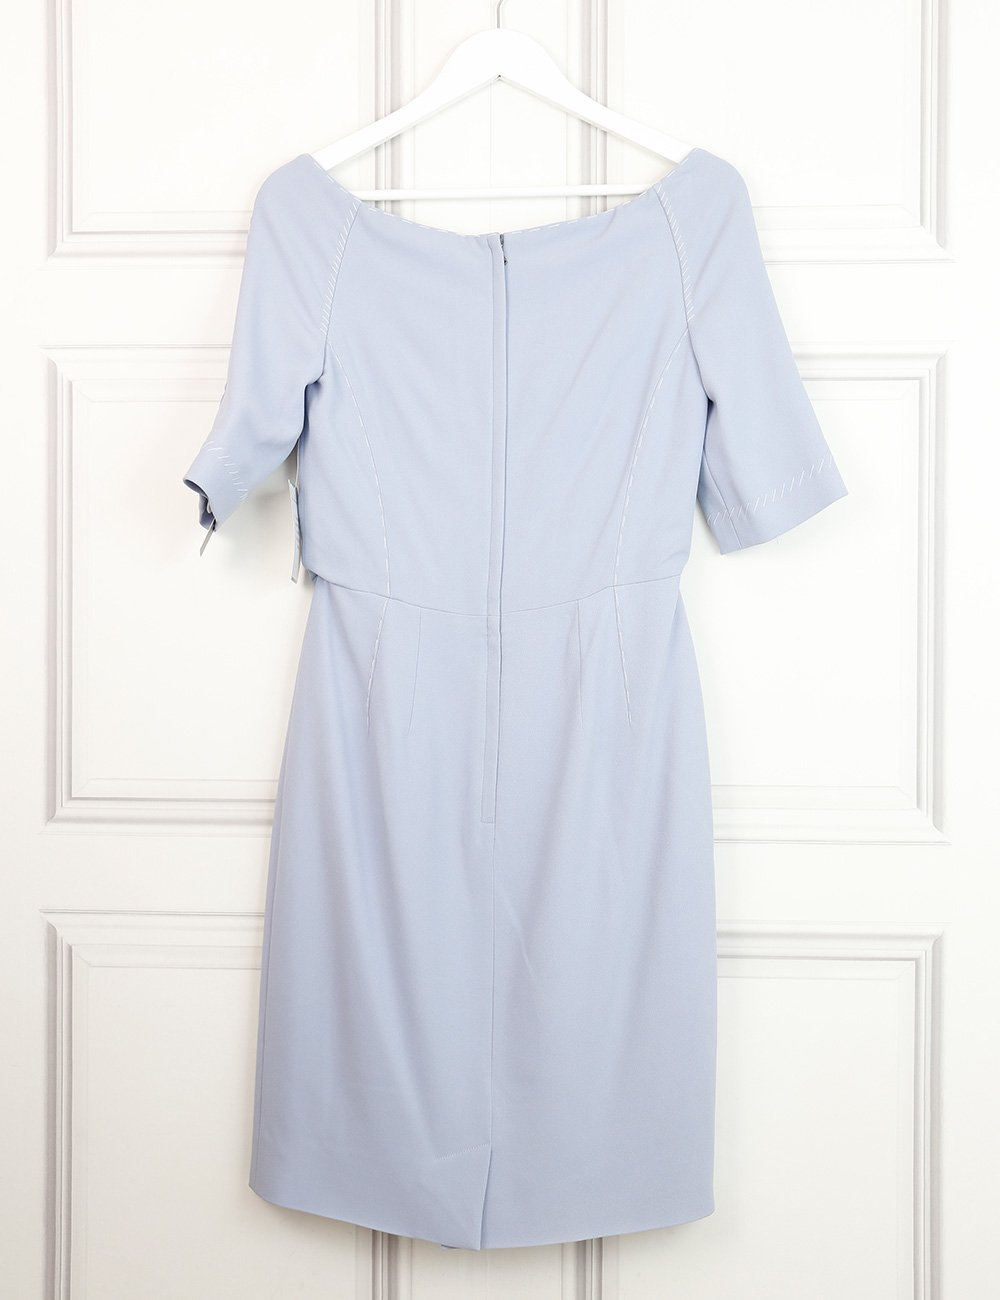 Dolce&Gabbana light blue structured midi dress with contrasting stitching 12UK- My Wardrobe Mistakes